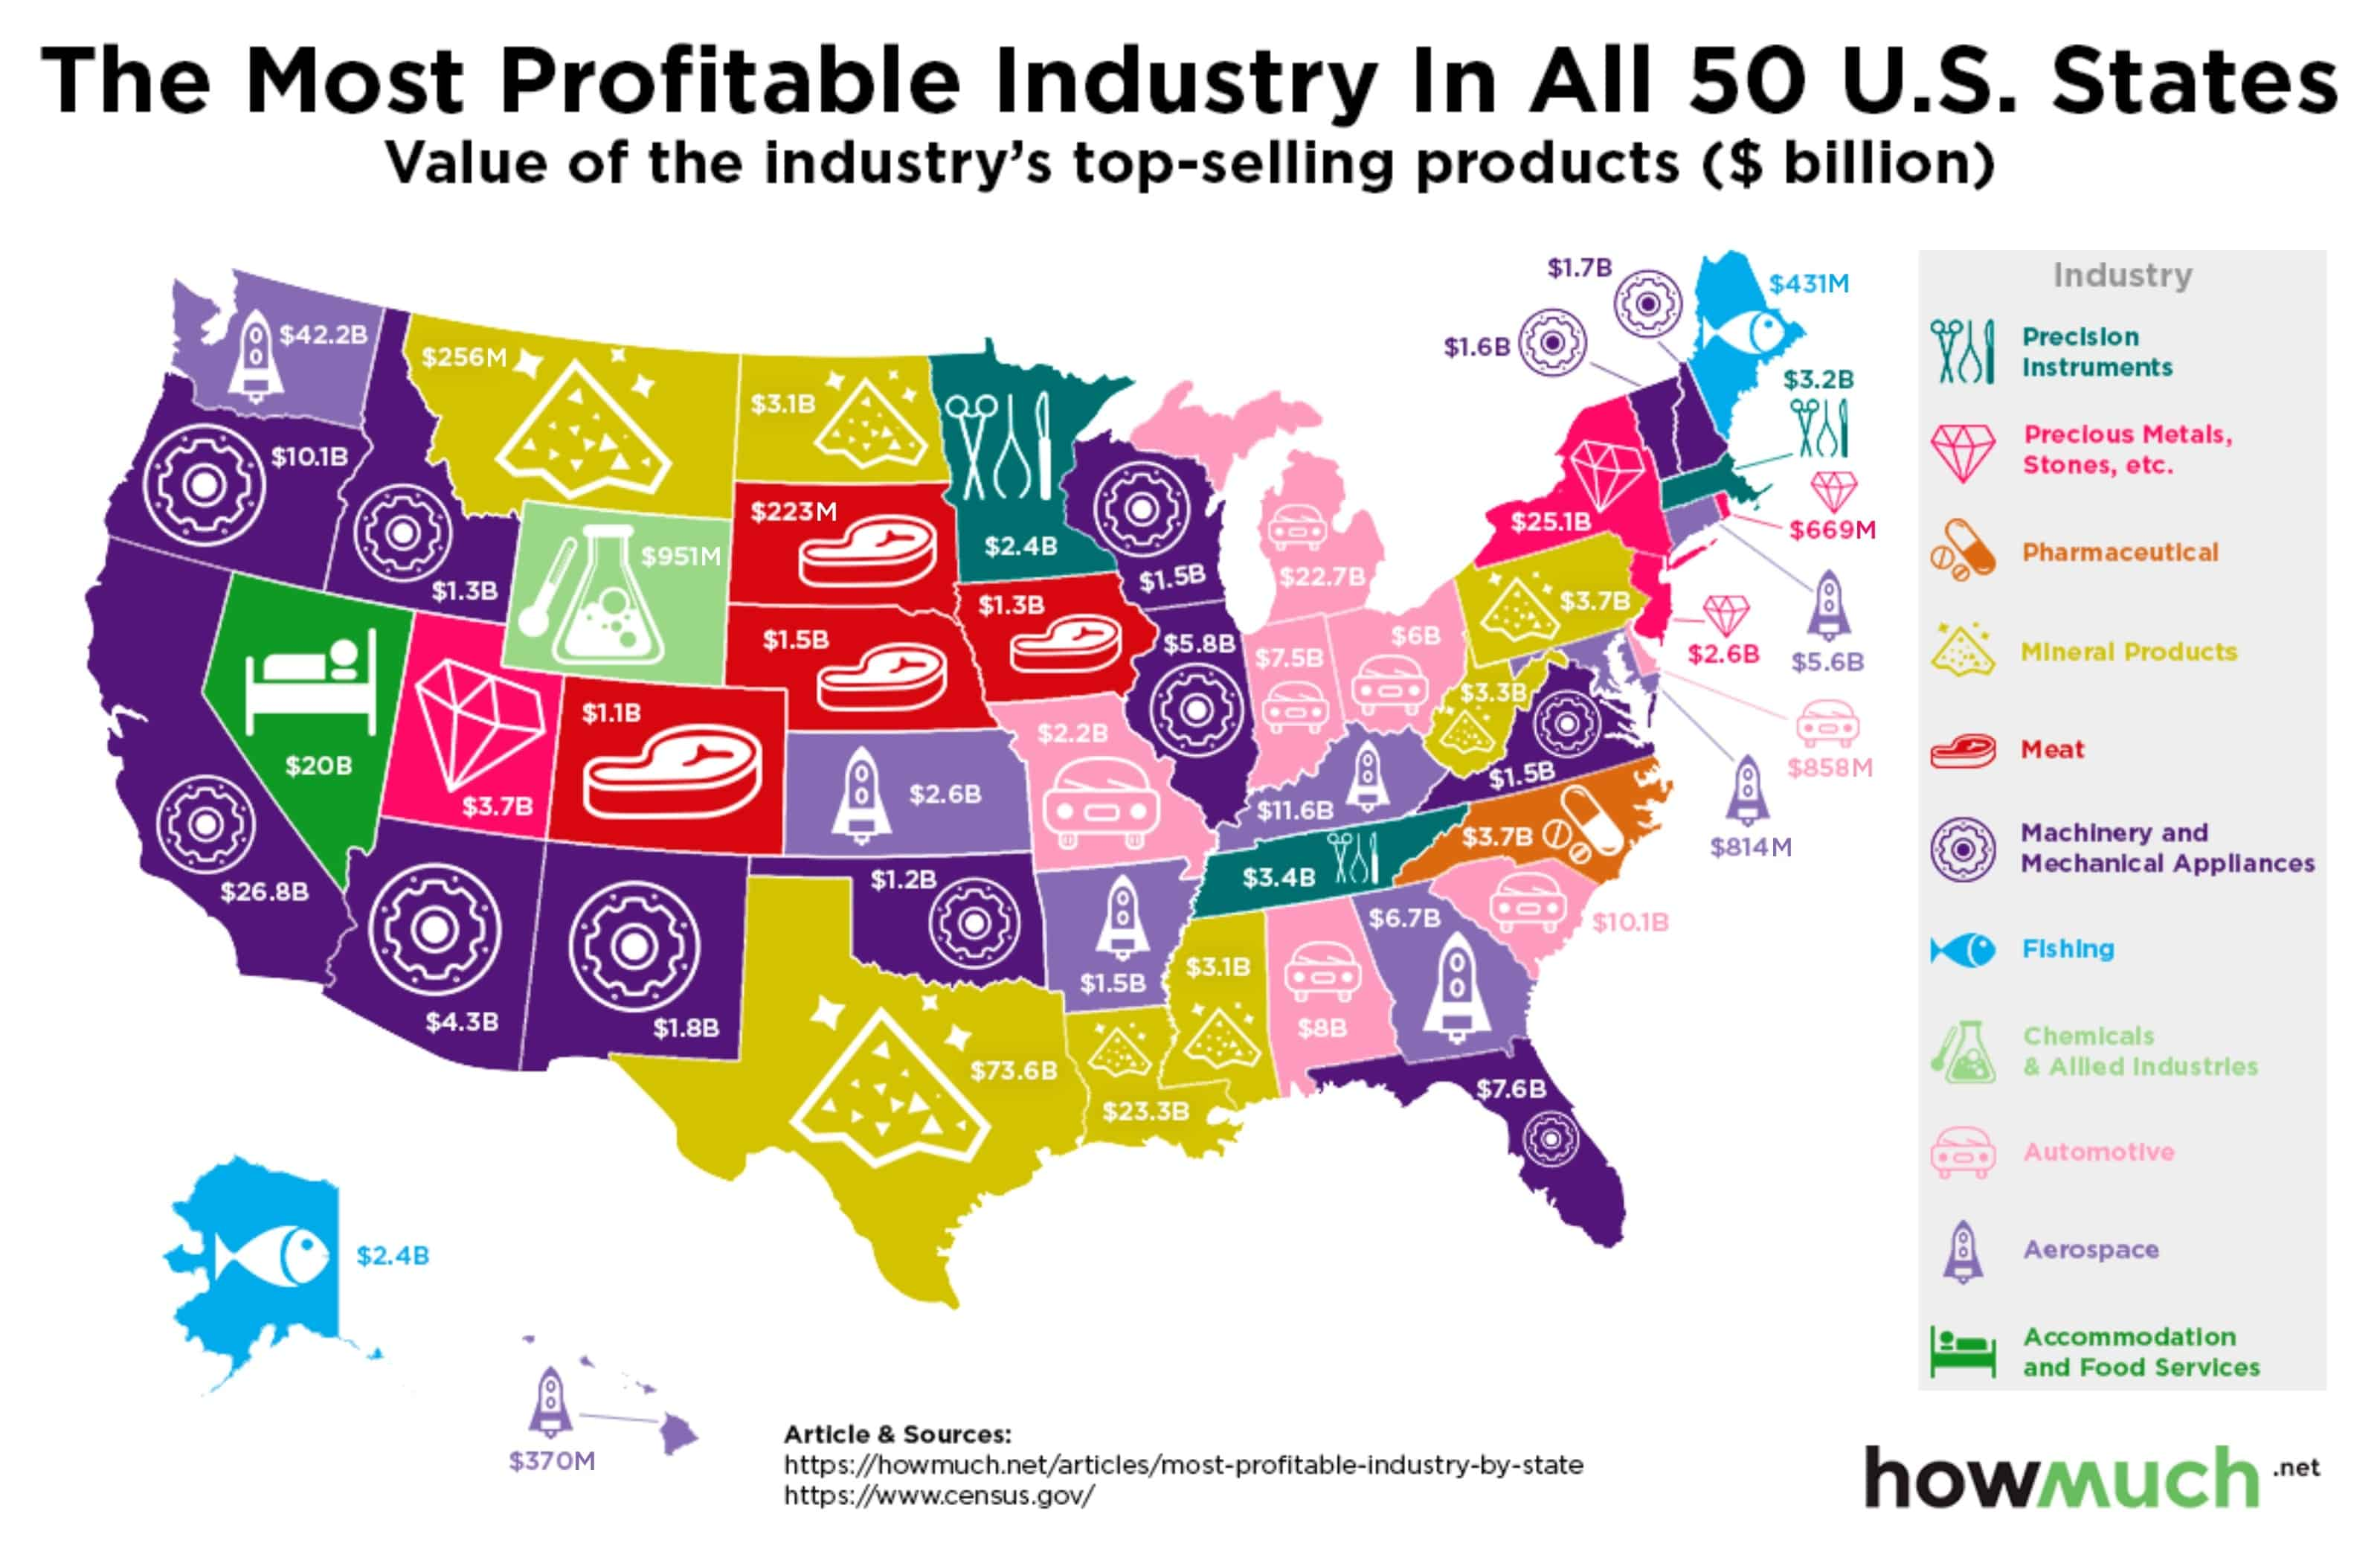 The Most Profitable Industry in All 50 U.S. States